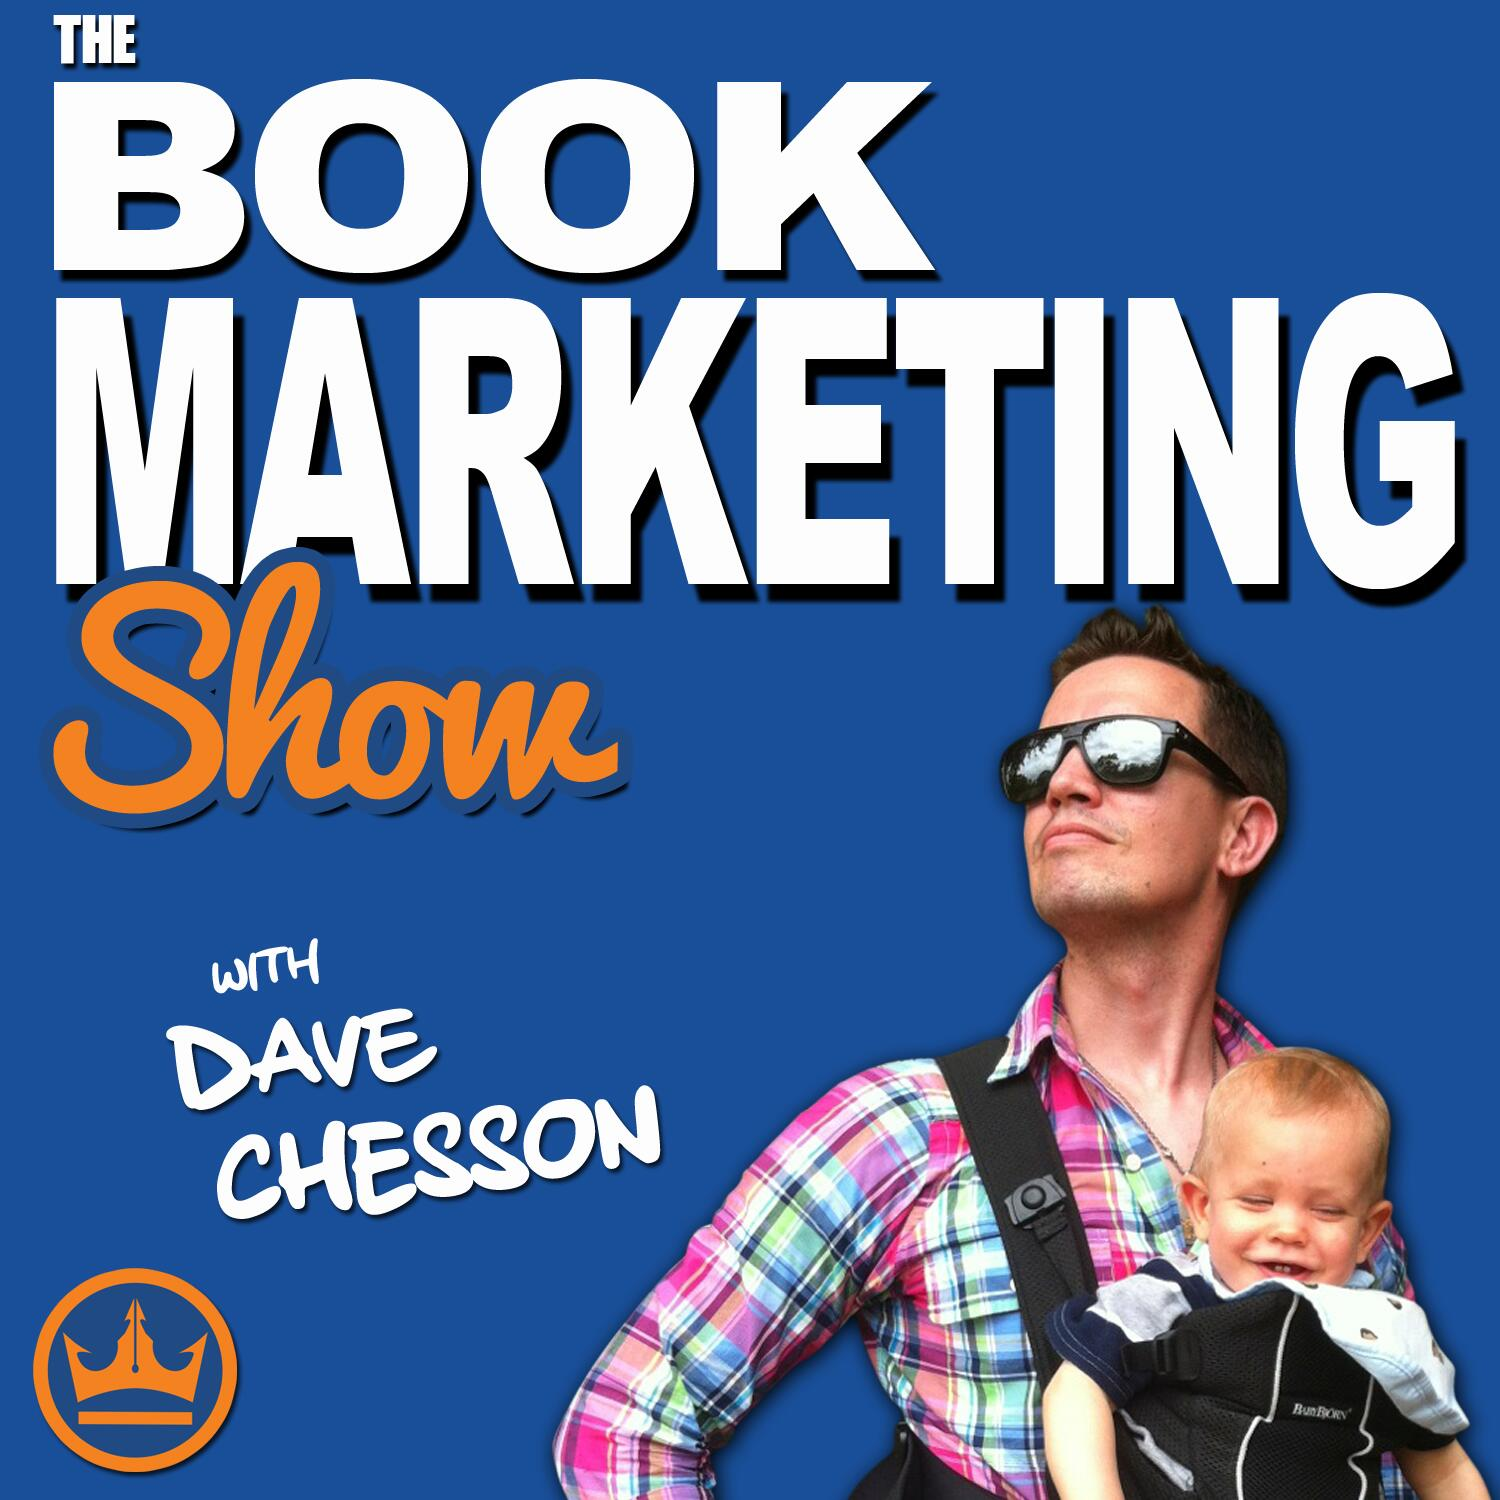 Book Marketing Show Podcast with Dave Chesson